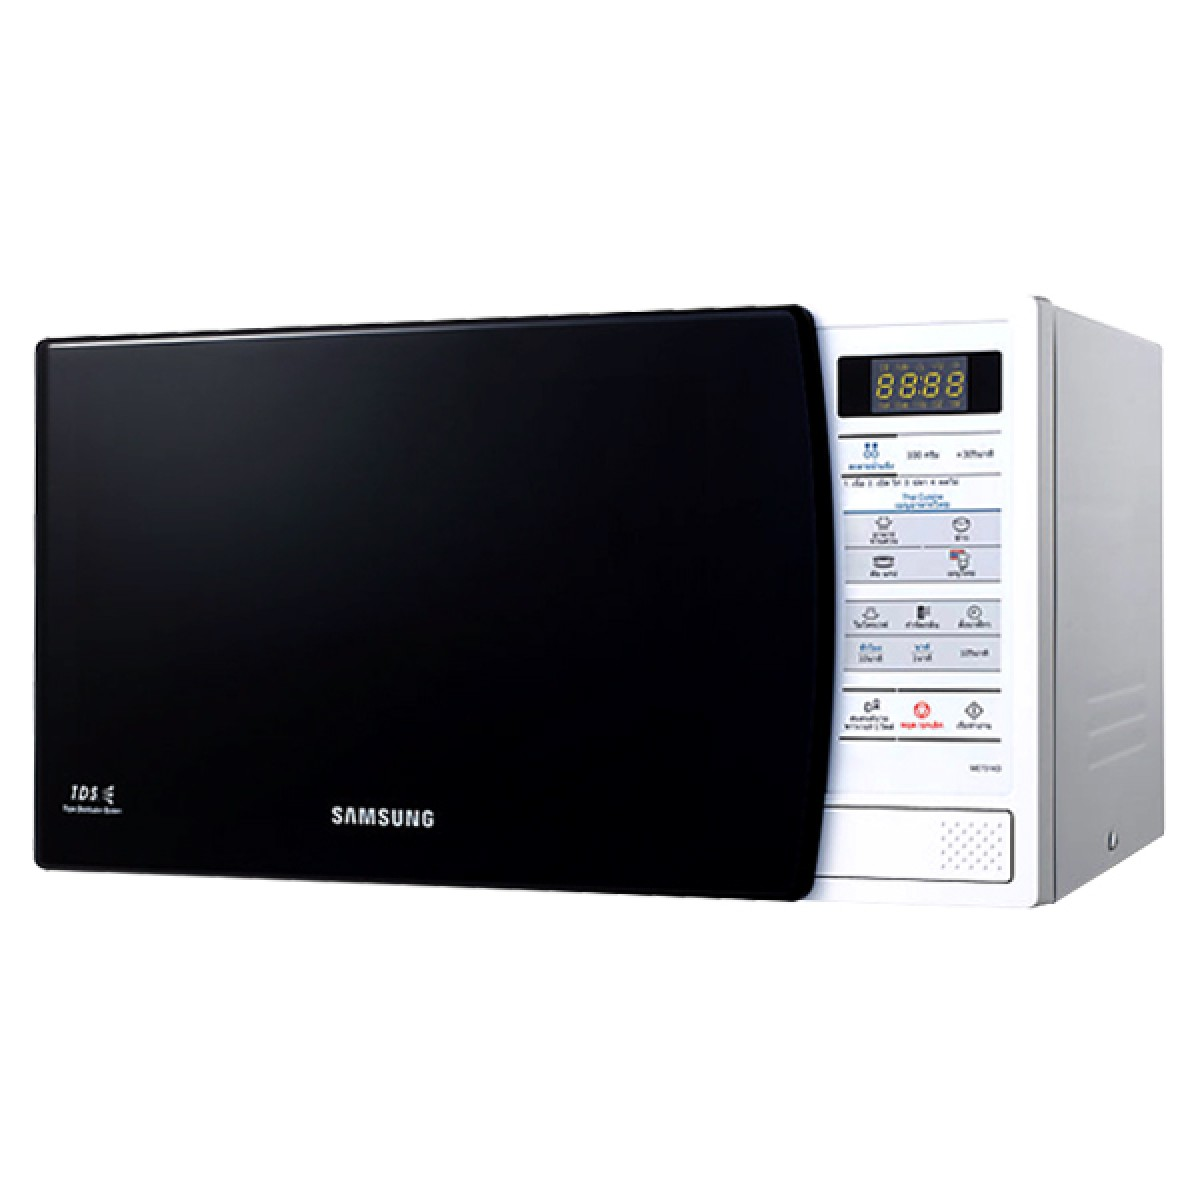 Samsung Microwave Oven ~ Samsung me k microwave oven l robinsons appliances